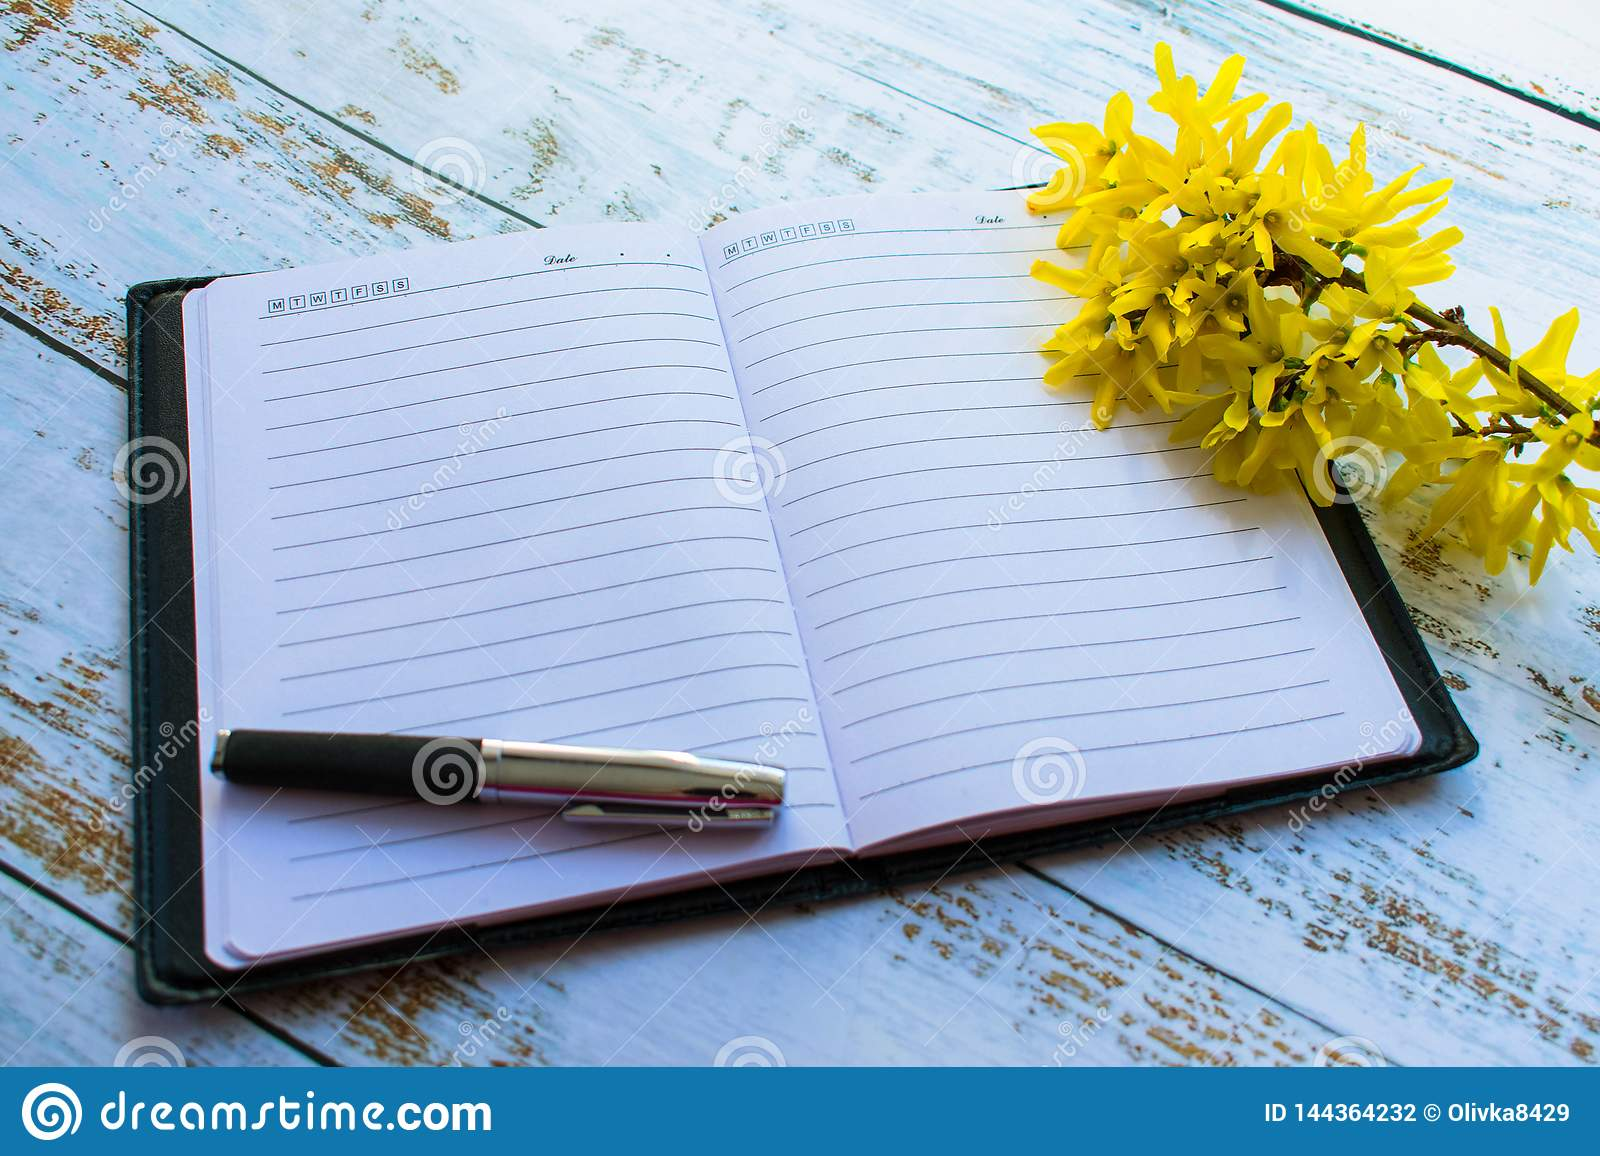 Open notebook on the table